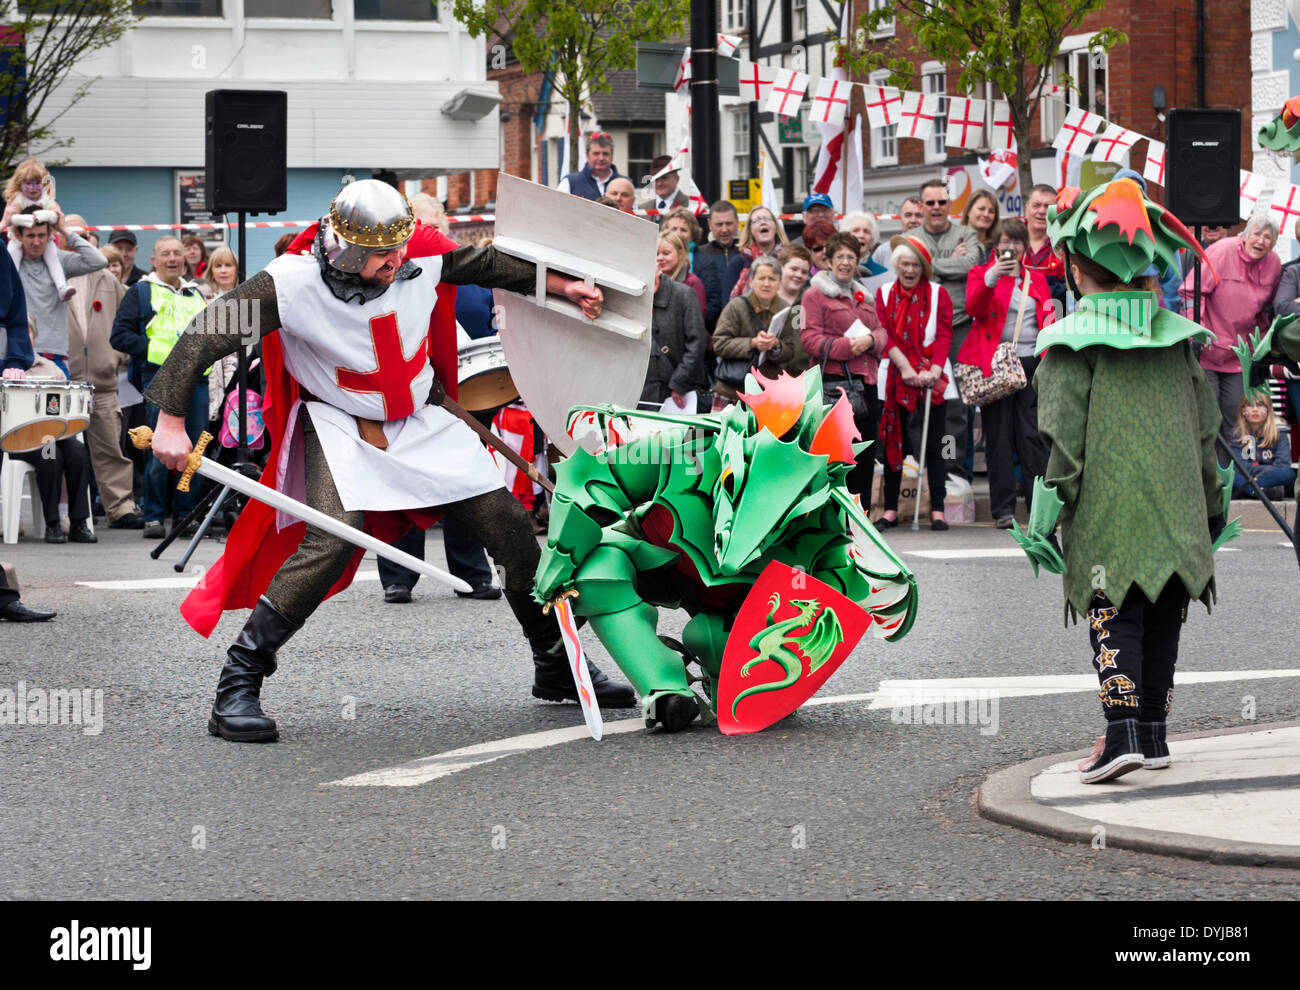 Newport, Shropshire, UK. 19th April 2014.  St George's Day Celebrations, Easter weekend, Saturday 19 April. including St George slaying the dragon. Money is raised for Newport Food Bank and Young Carers. Credit:  John Bentley/Alamy Live News - Stock Image